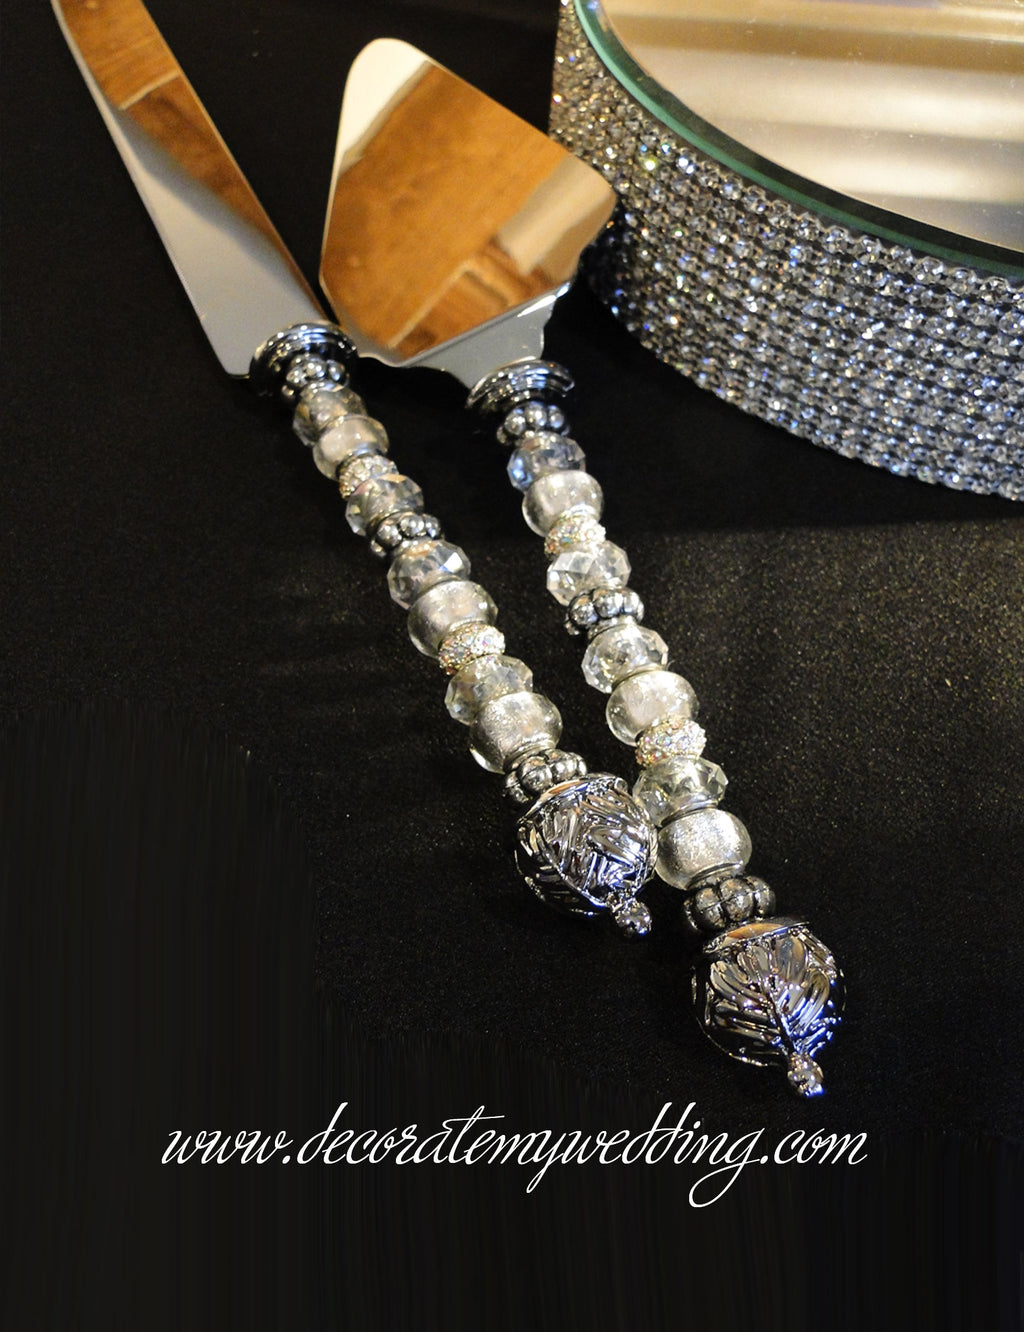 The handle on this beaded cake knife is covered with gorgeous silver and clear beads.